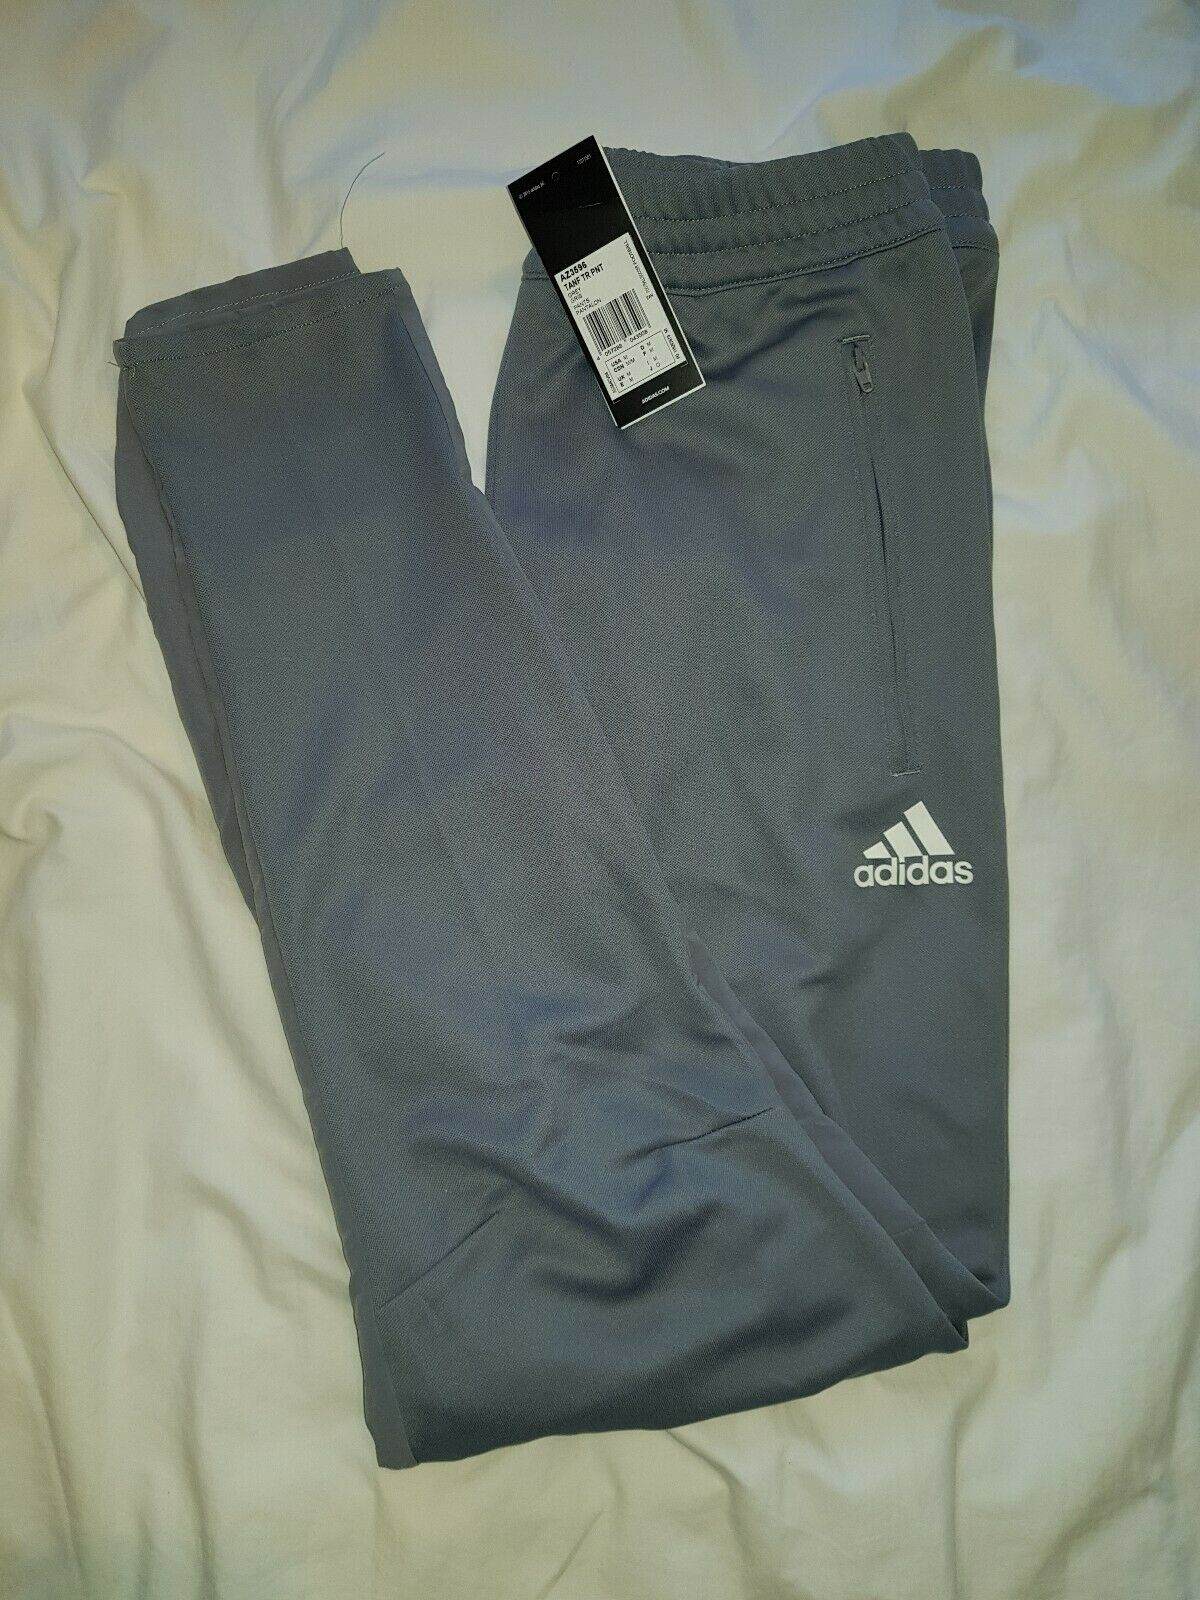 New Adidas Climalte TANF TR PANT Grey M